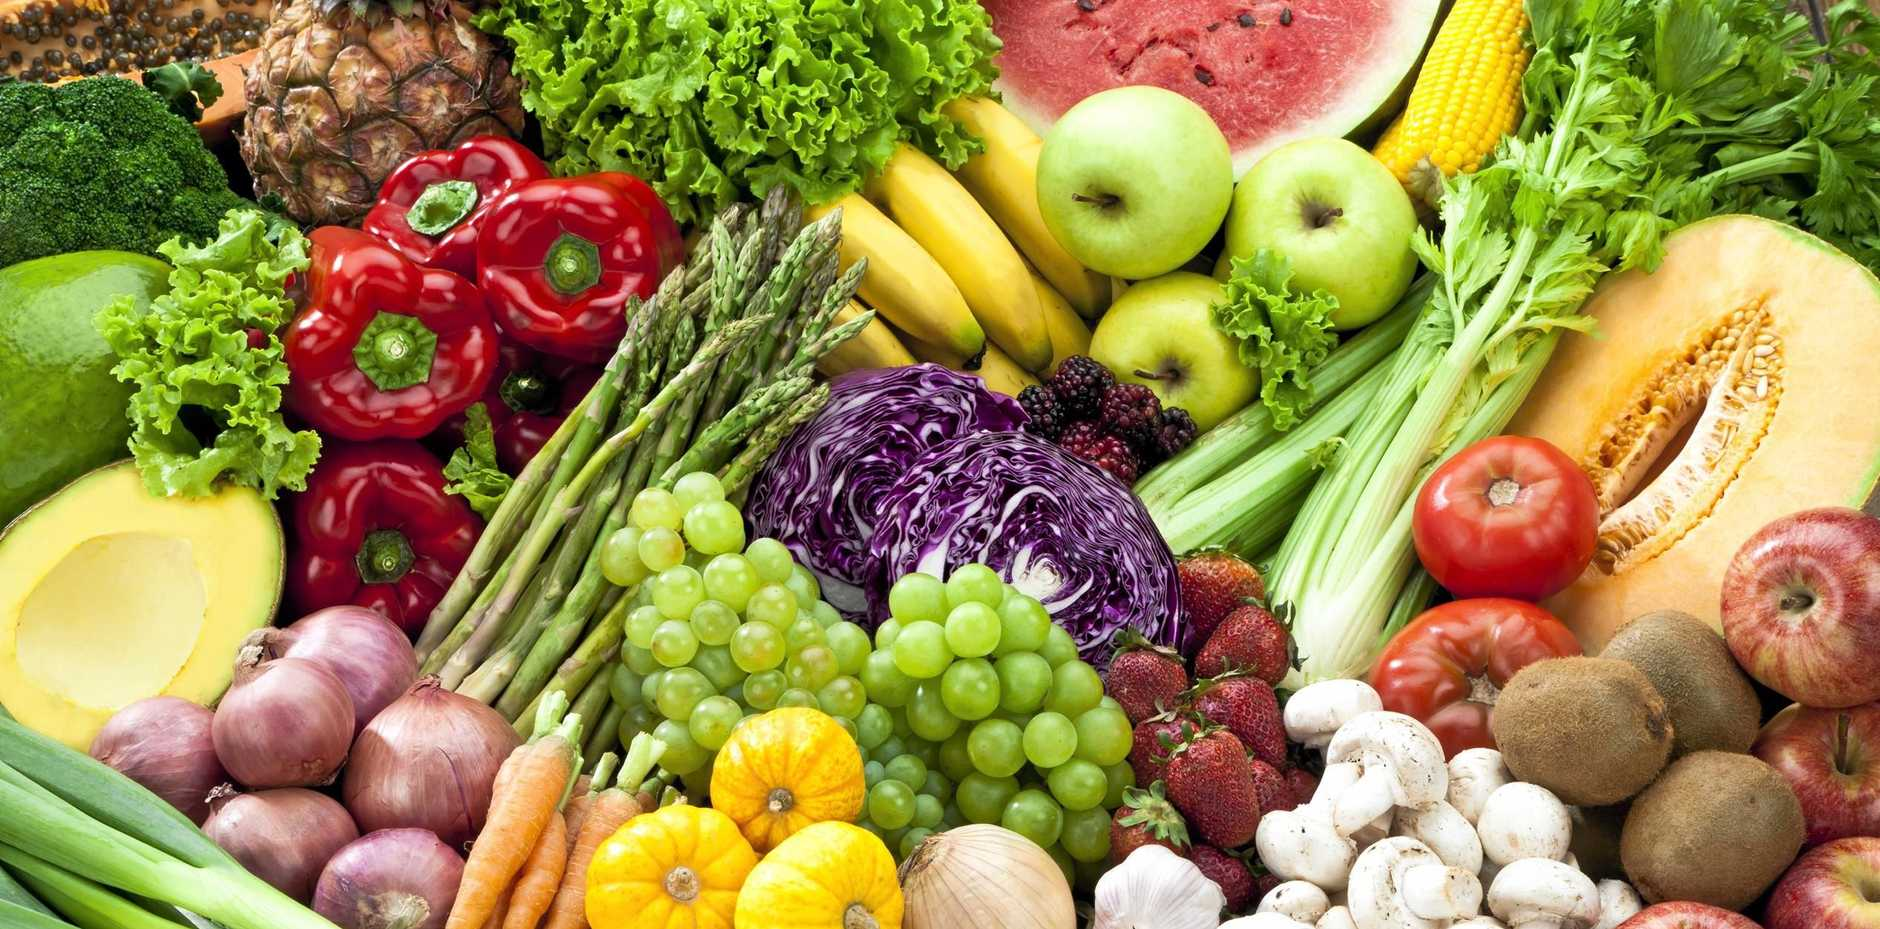 EAT UP: A diet rich in fruit, vegetables and whole grains can beat depression, a study has found.